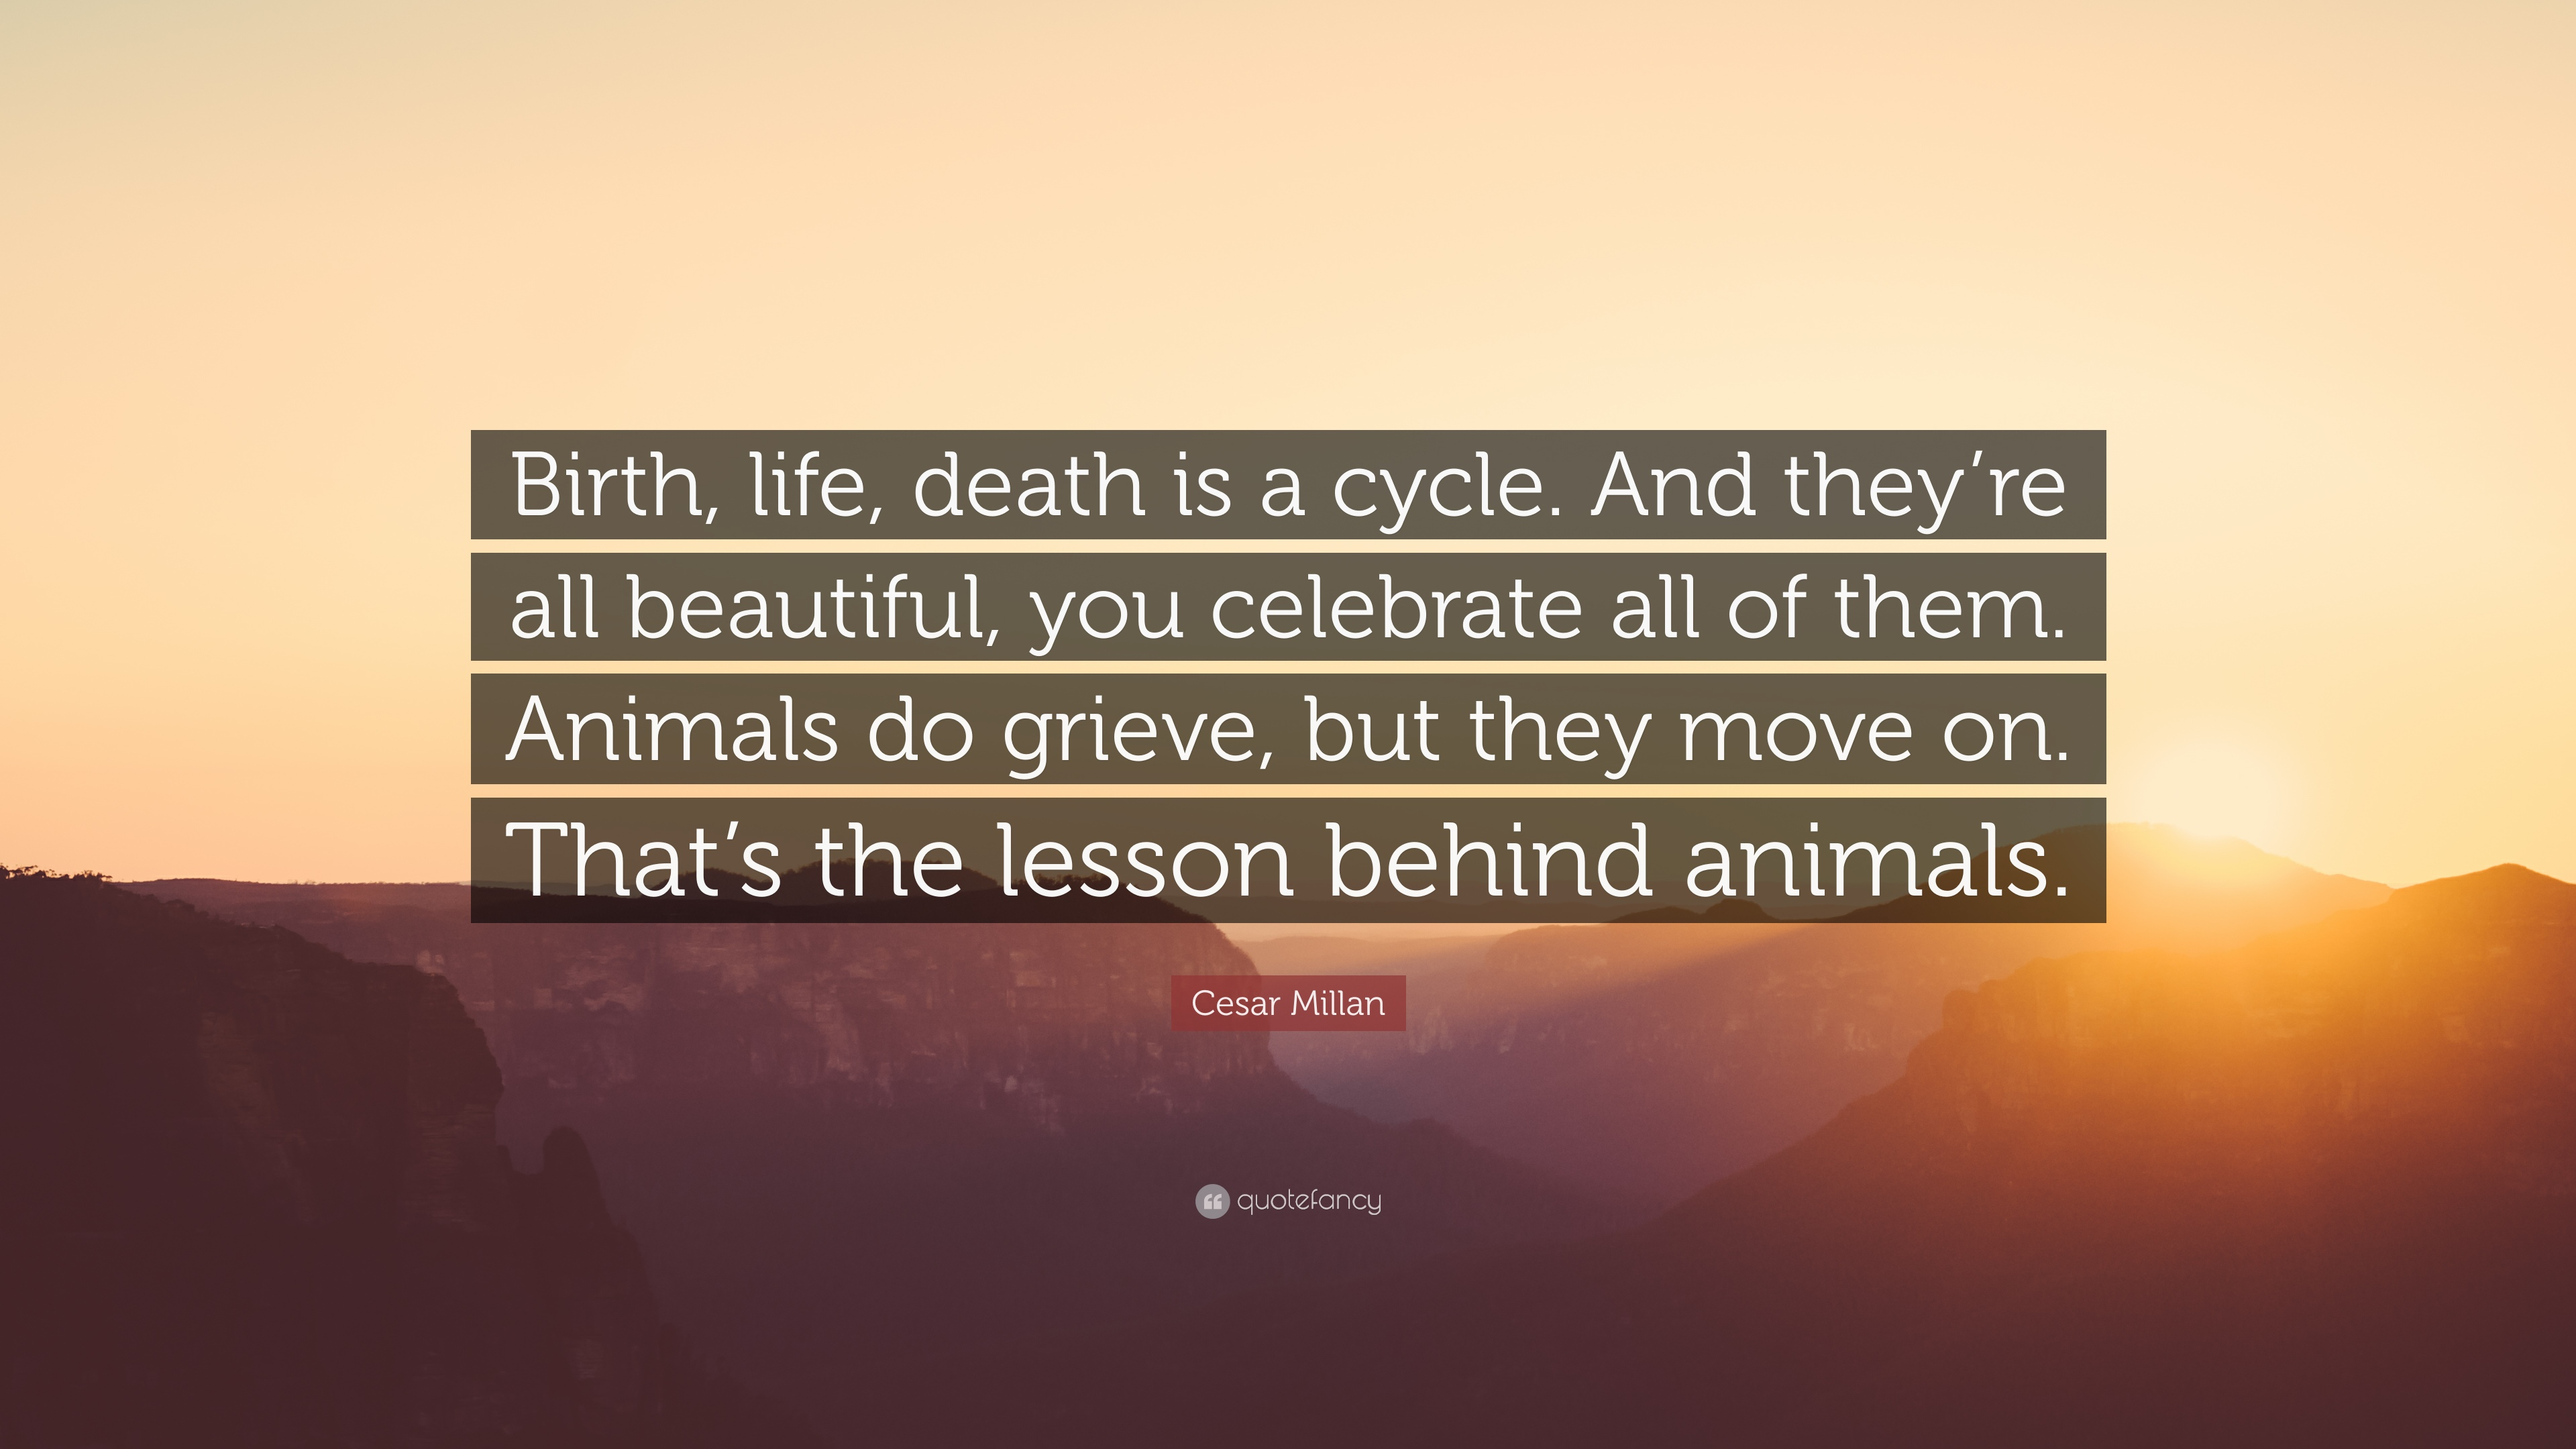 Quotes For Life And Death Life Cycle Of Death Quotes